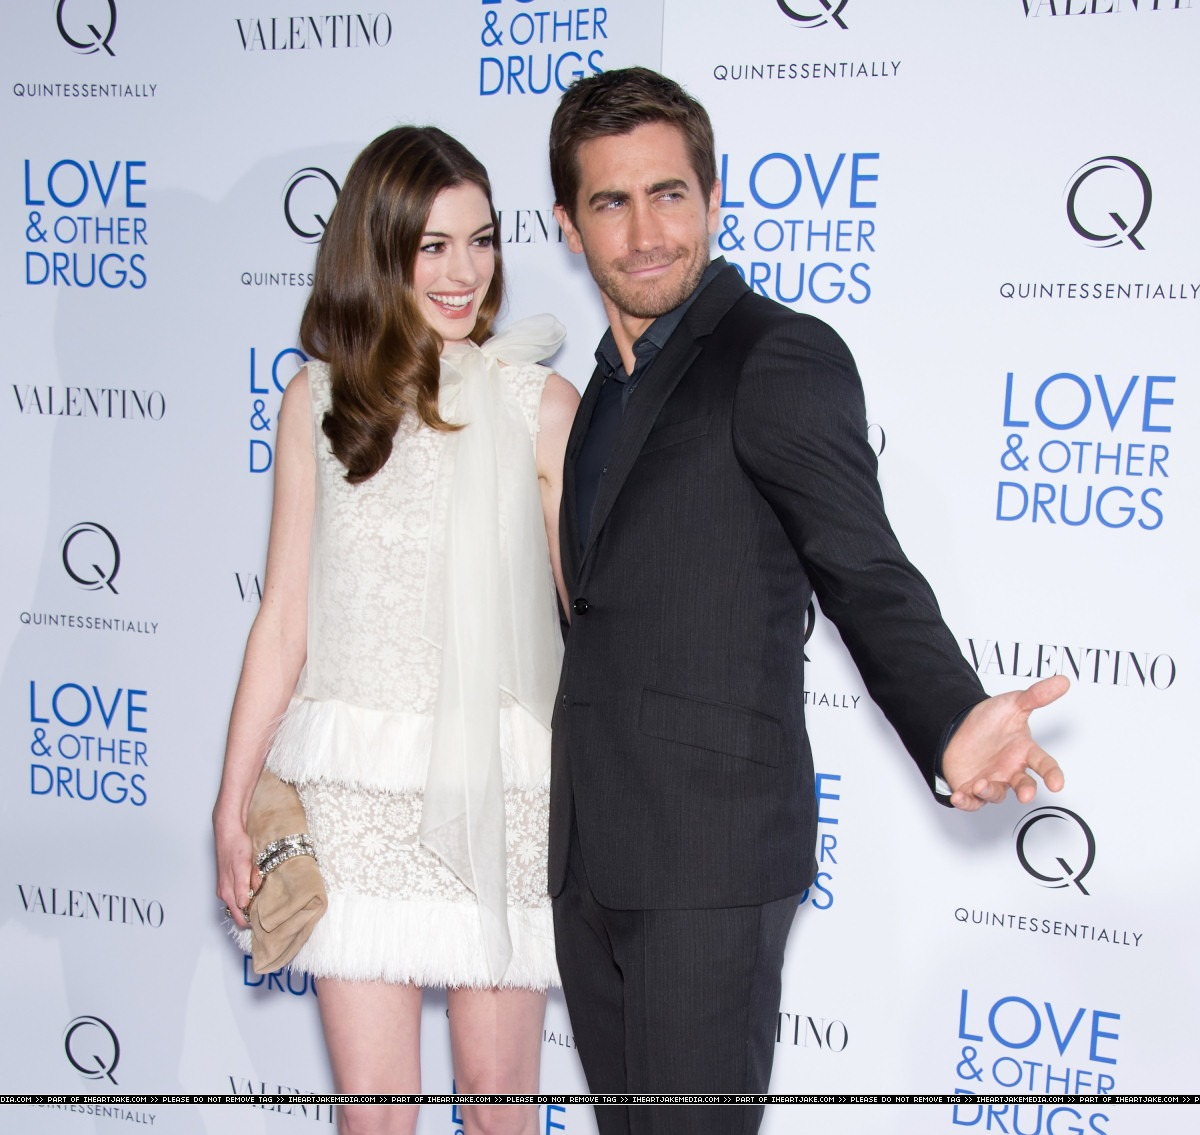 WEIRDLAND: Jake Gyllenhaal wants a family of his own and ... Jake Gyllenhaal's